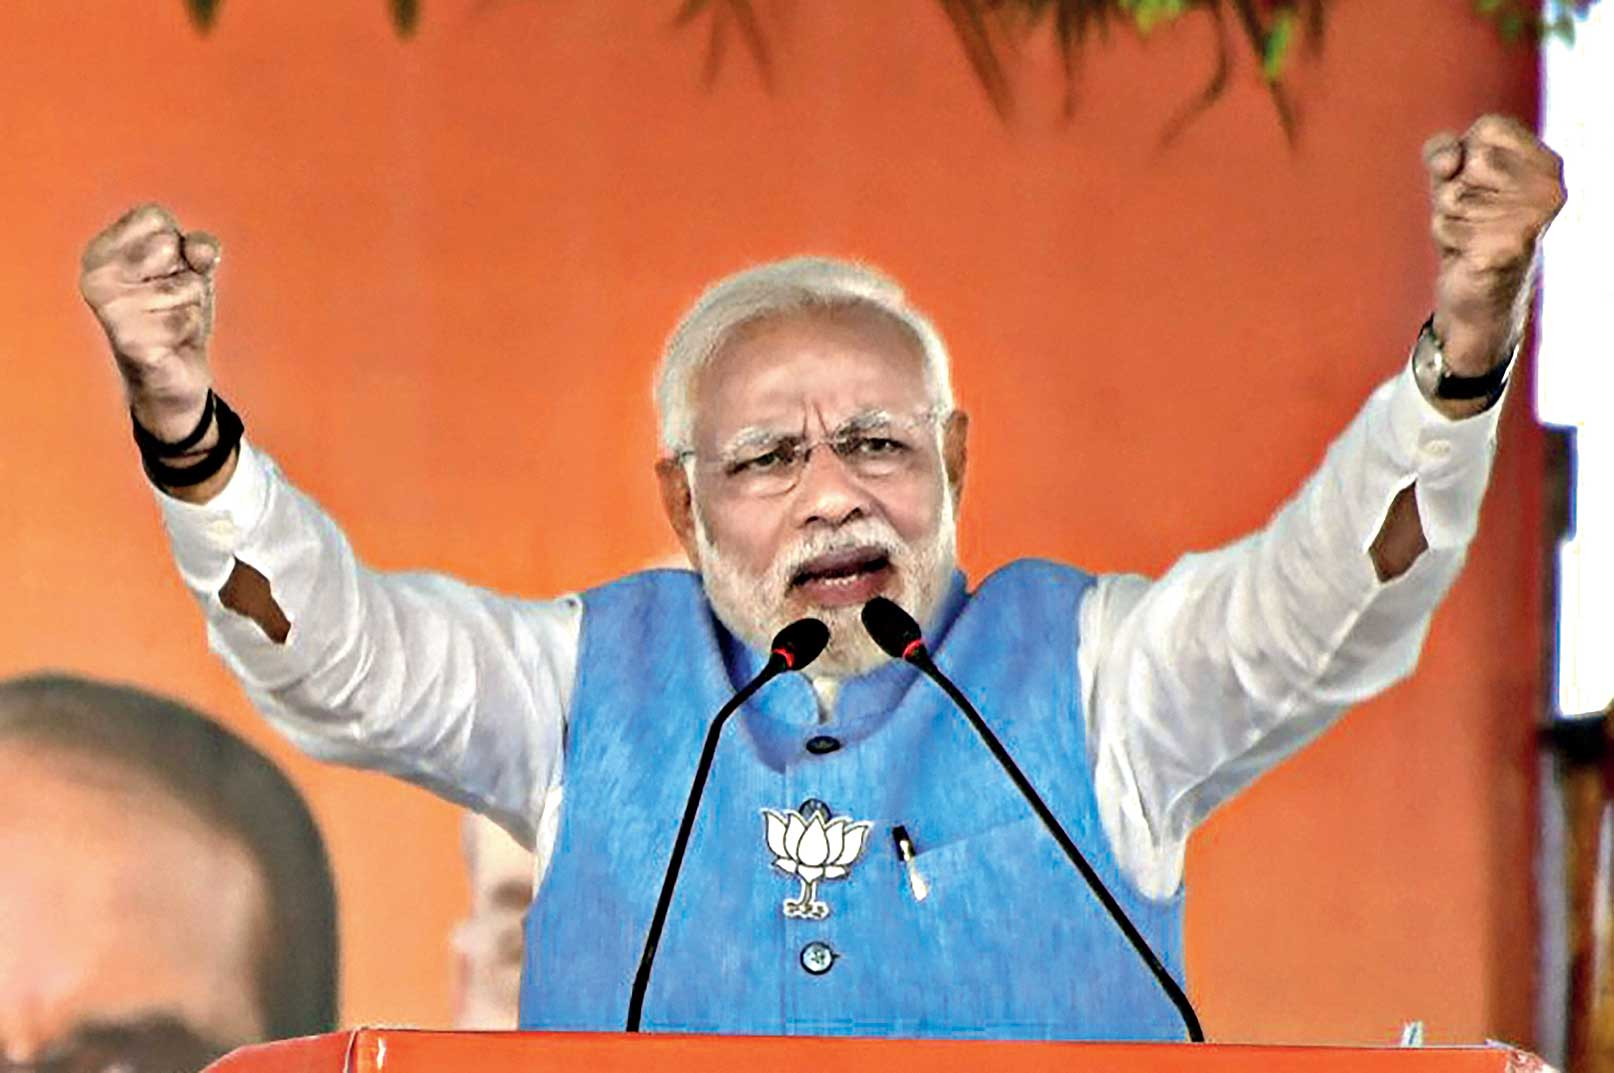 Narendra Modi addresses a public meeting in Vidisha on Sunday ahead of the Madhya Pradesh Assembly elections. At the rally, the Prime Minister attacked the Congress for dragging his parents' name into the campaign.